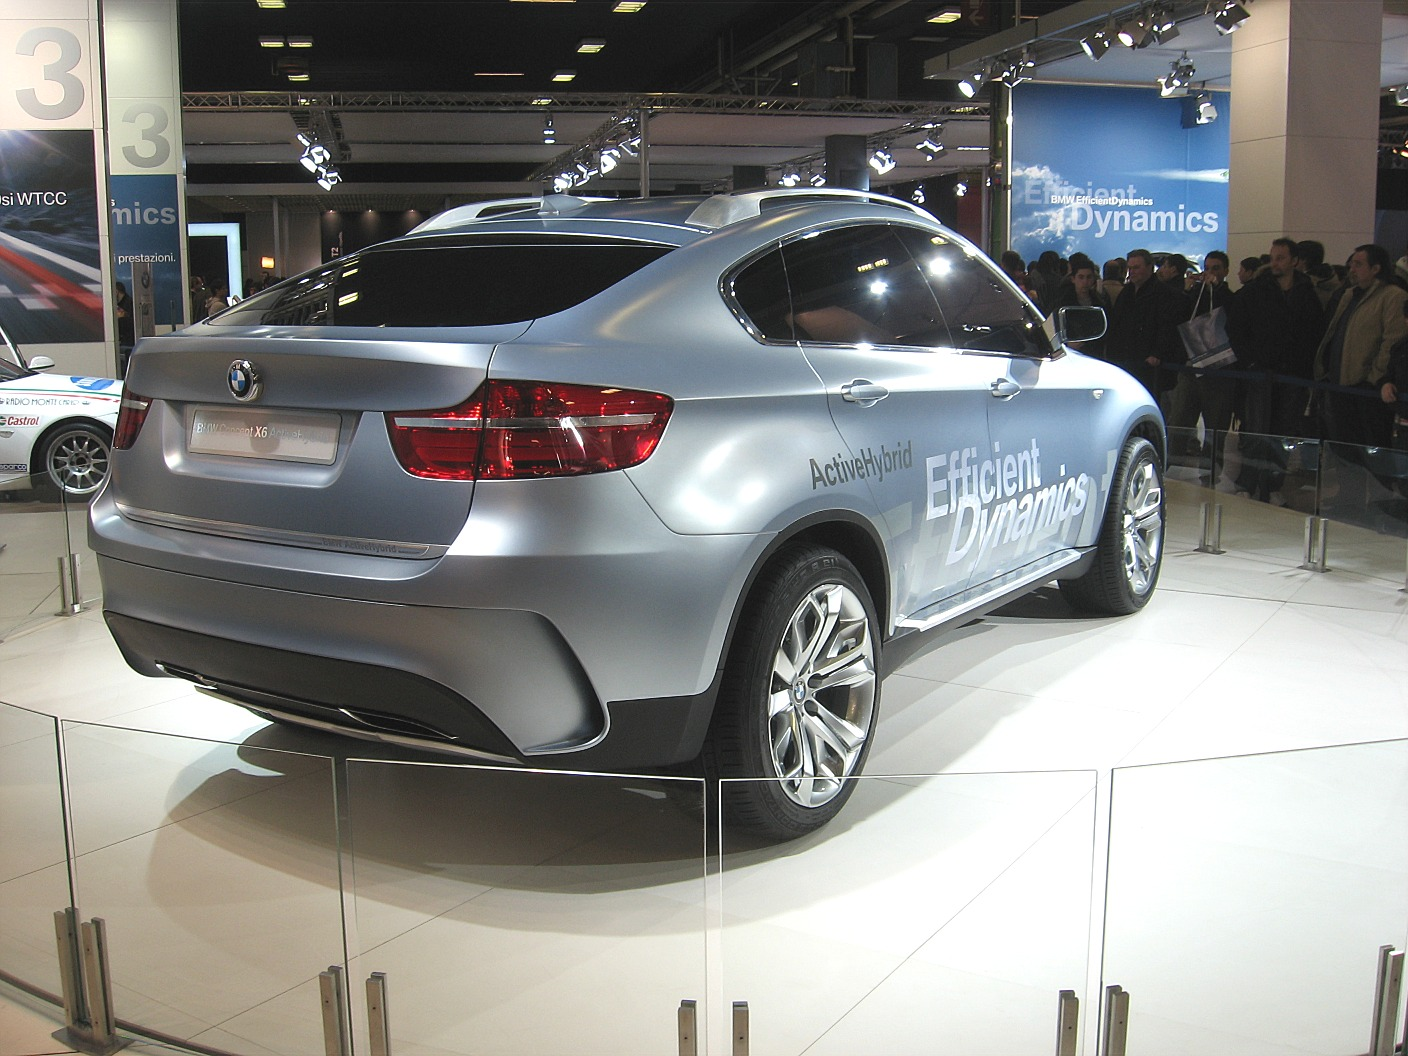 File:BMW X6-ActiveHybrid Rear-view.JPG - Wikimedia Commons